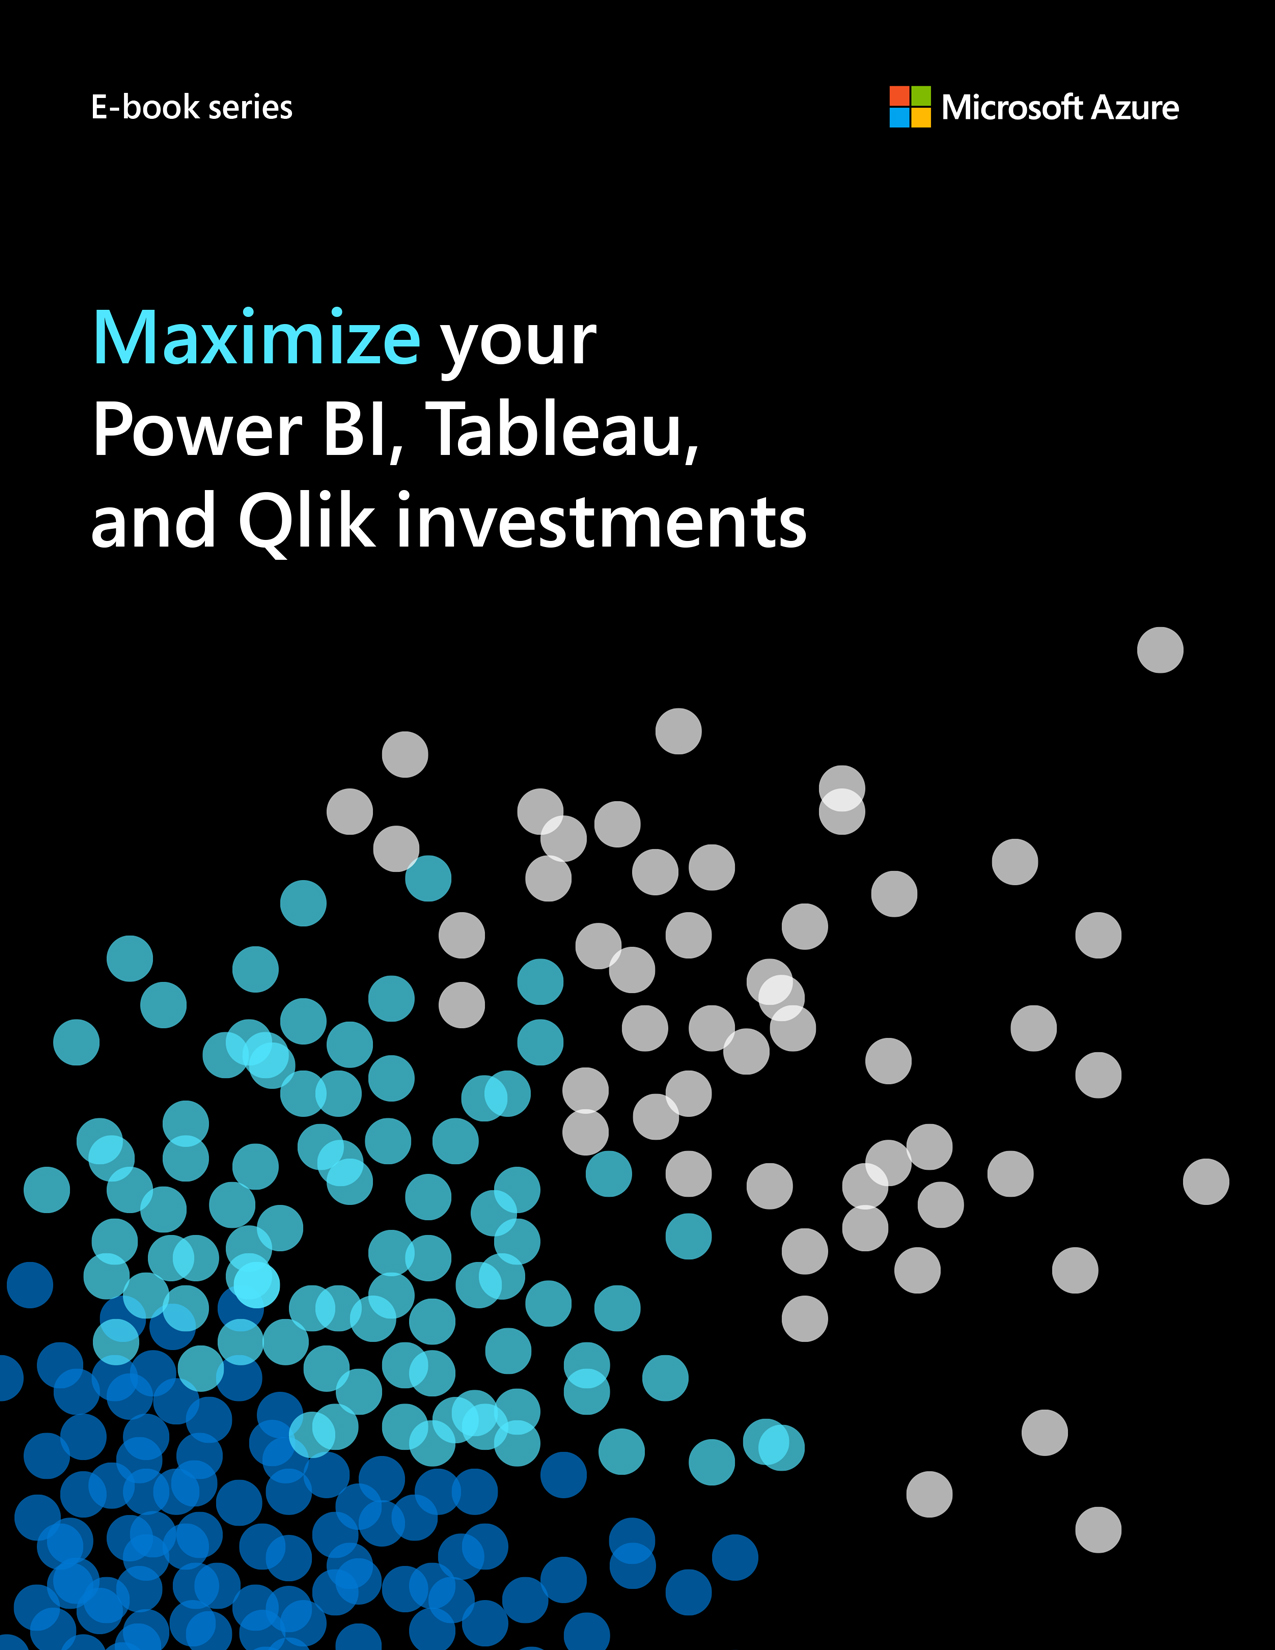 Maximize your Power BI, Tableau and Qlik investments